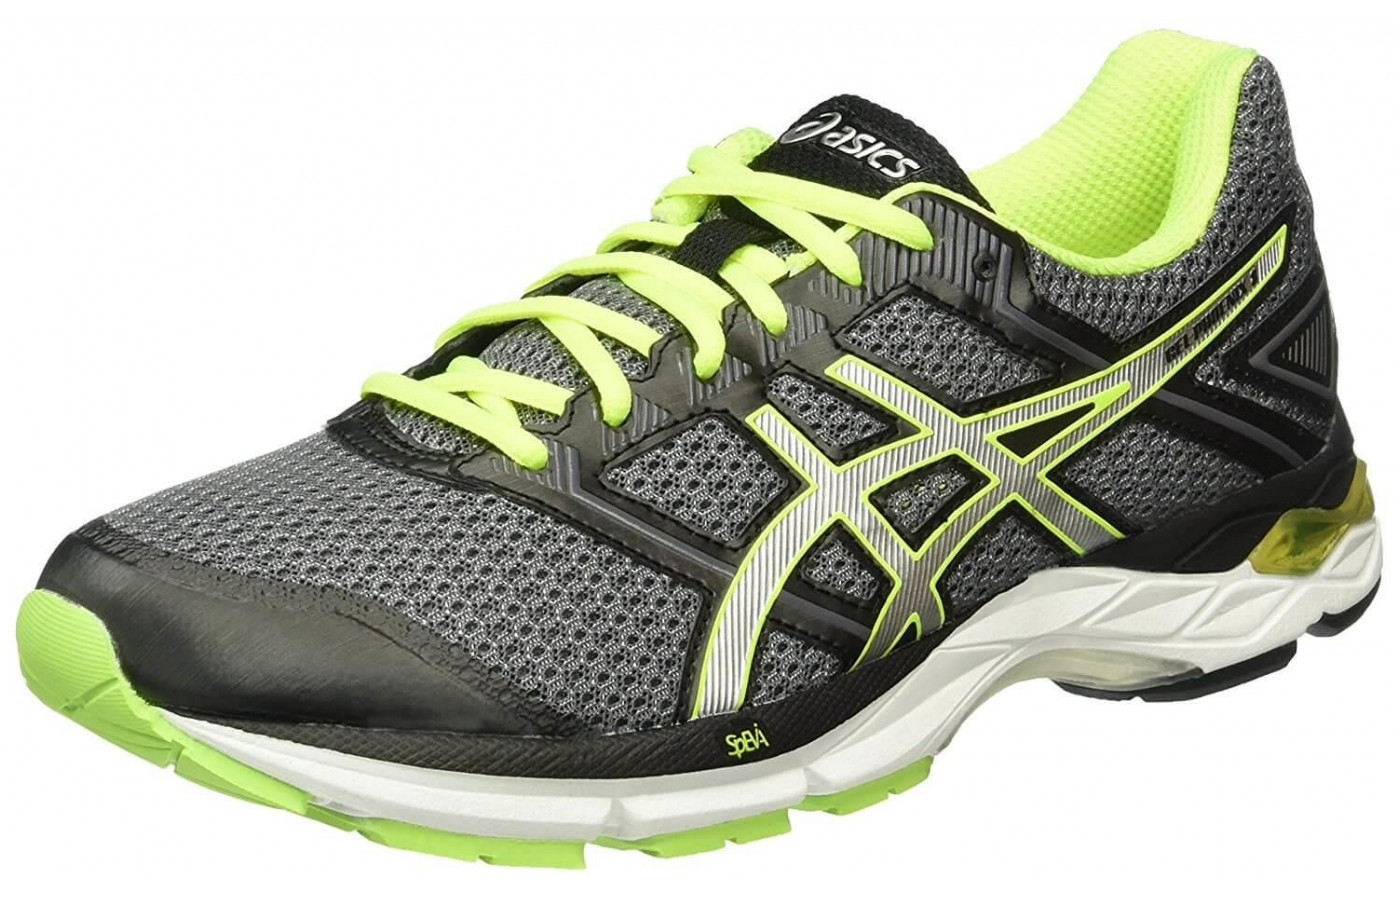 10 Reasons toNOT to Buy Asics Gel DS Trainer 22 (Nov 2019